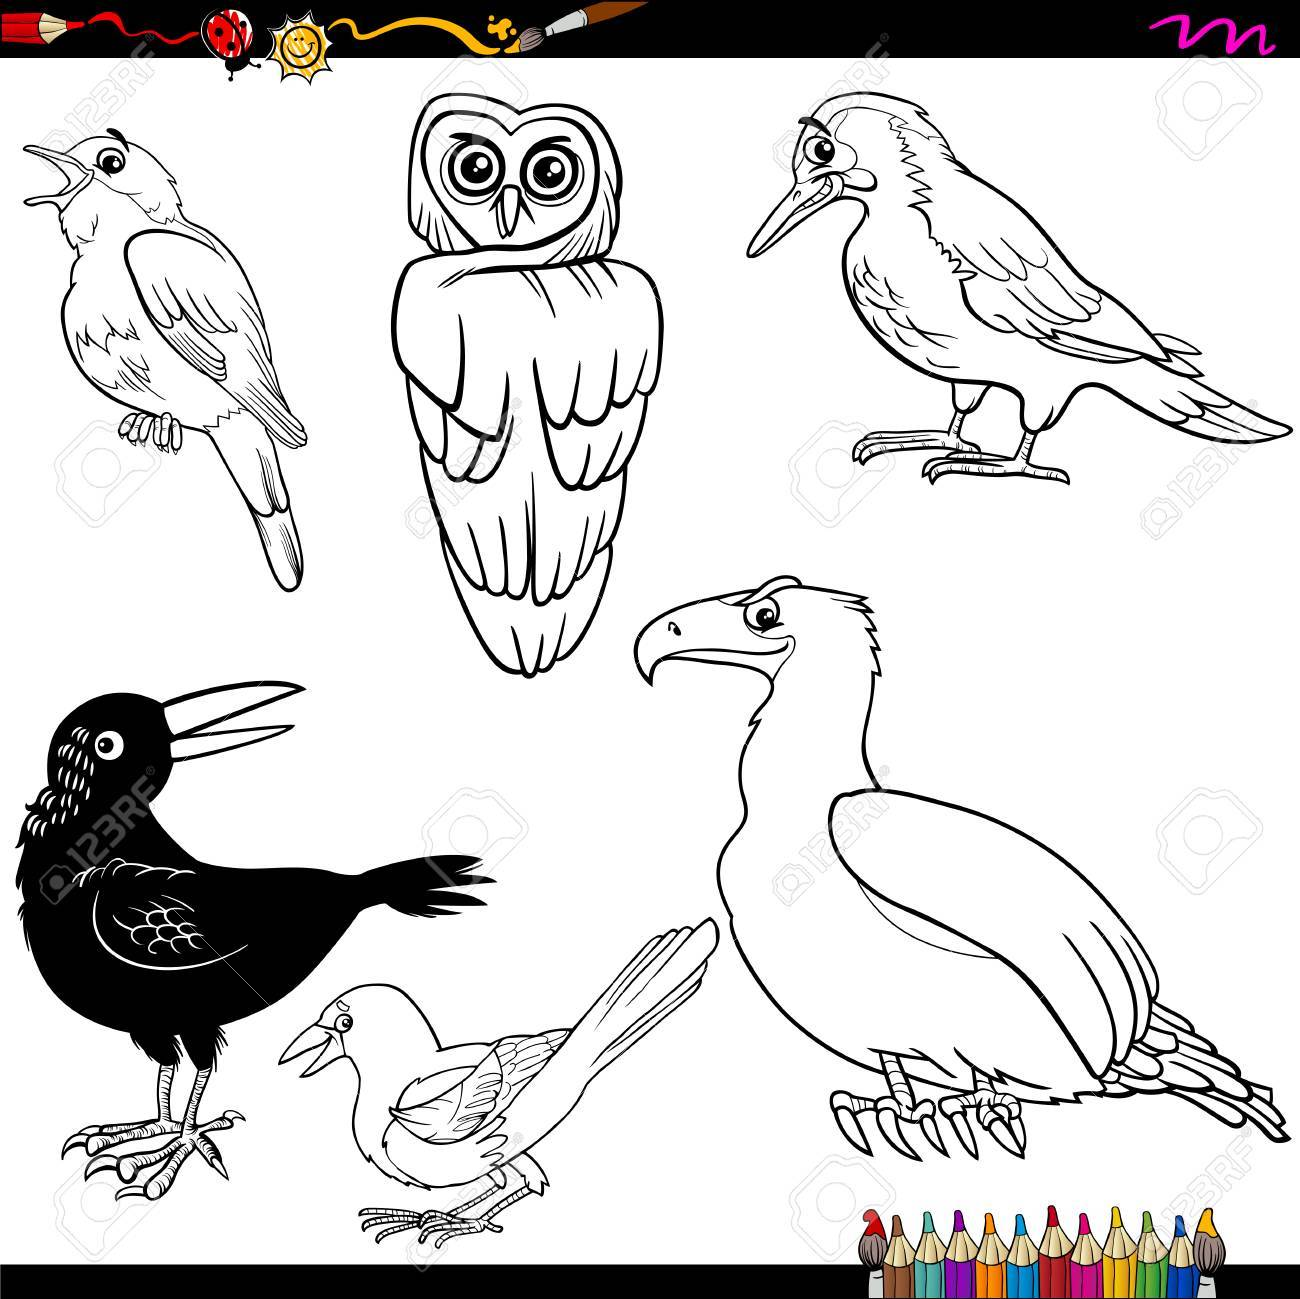 Coloring Book Cartoon Illustration Of Funny Birds Characters Set Stock Vector